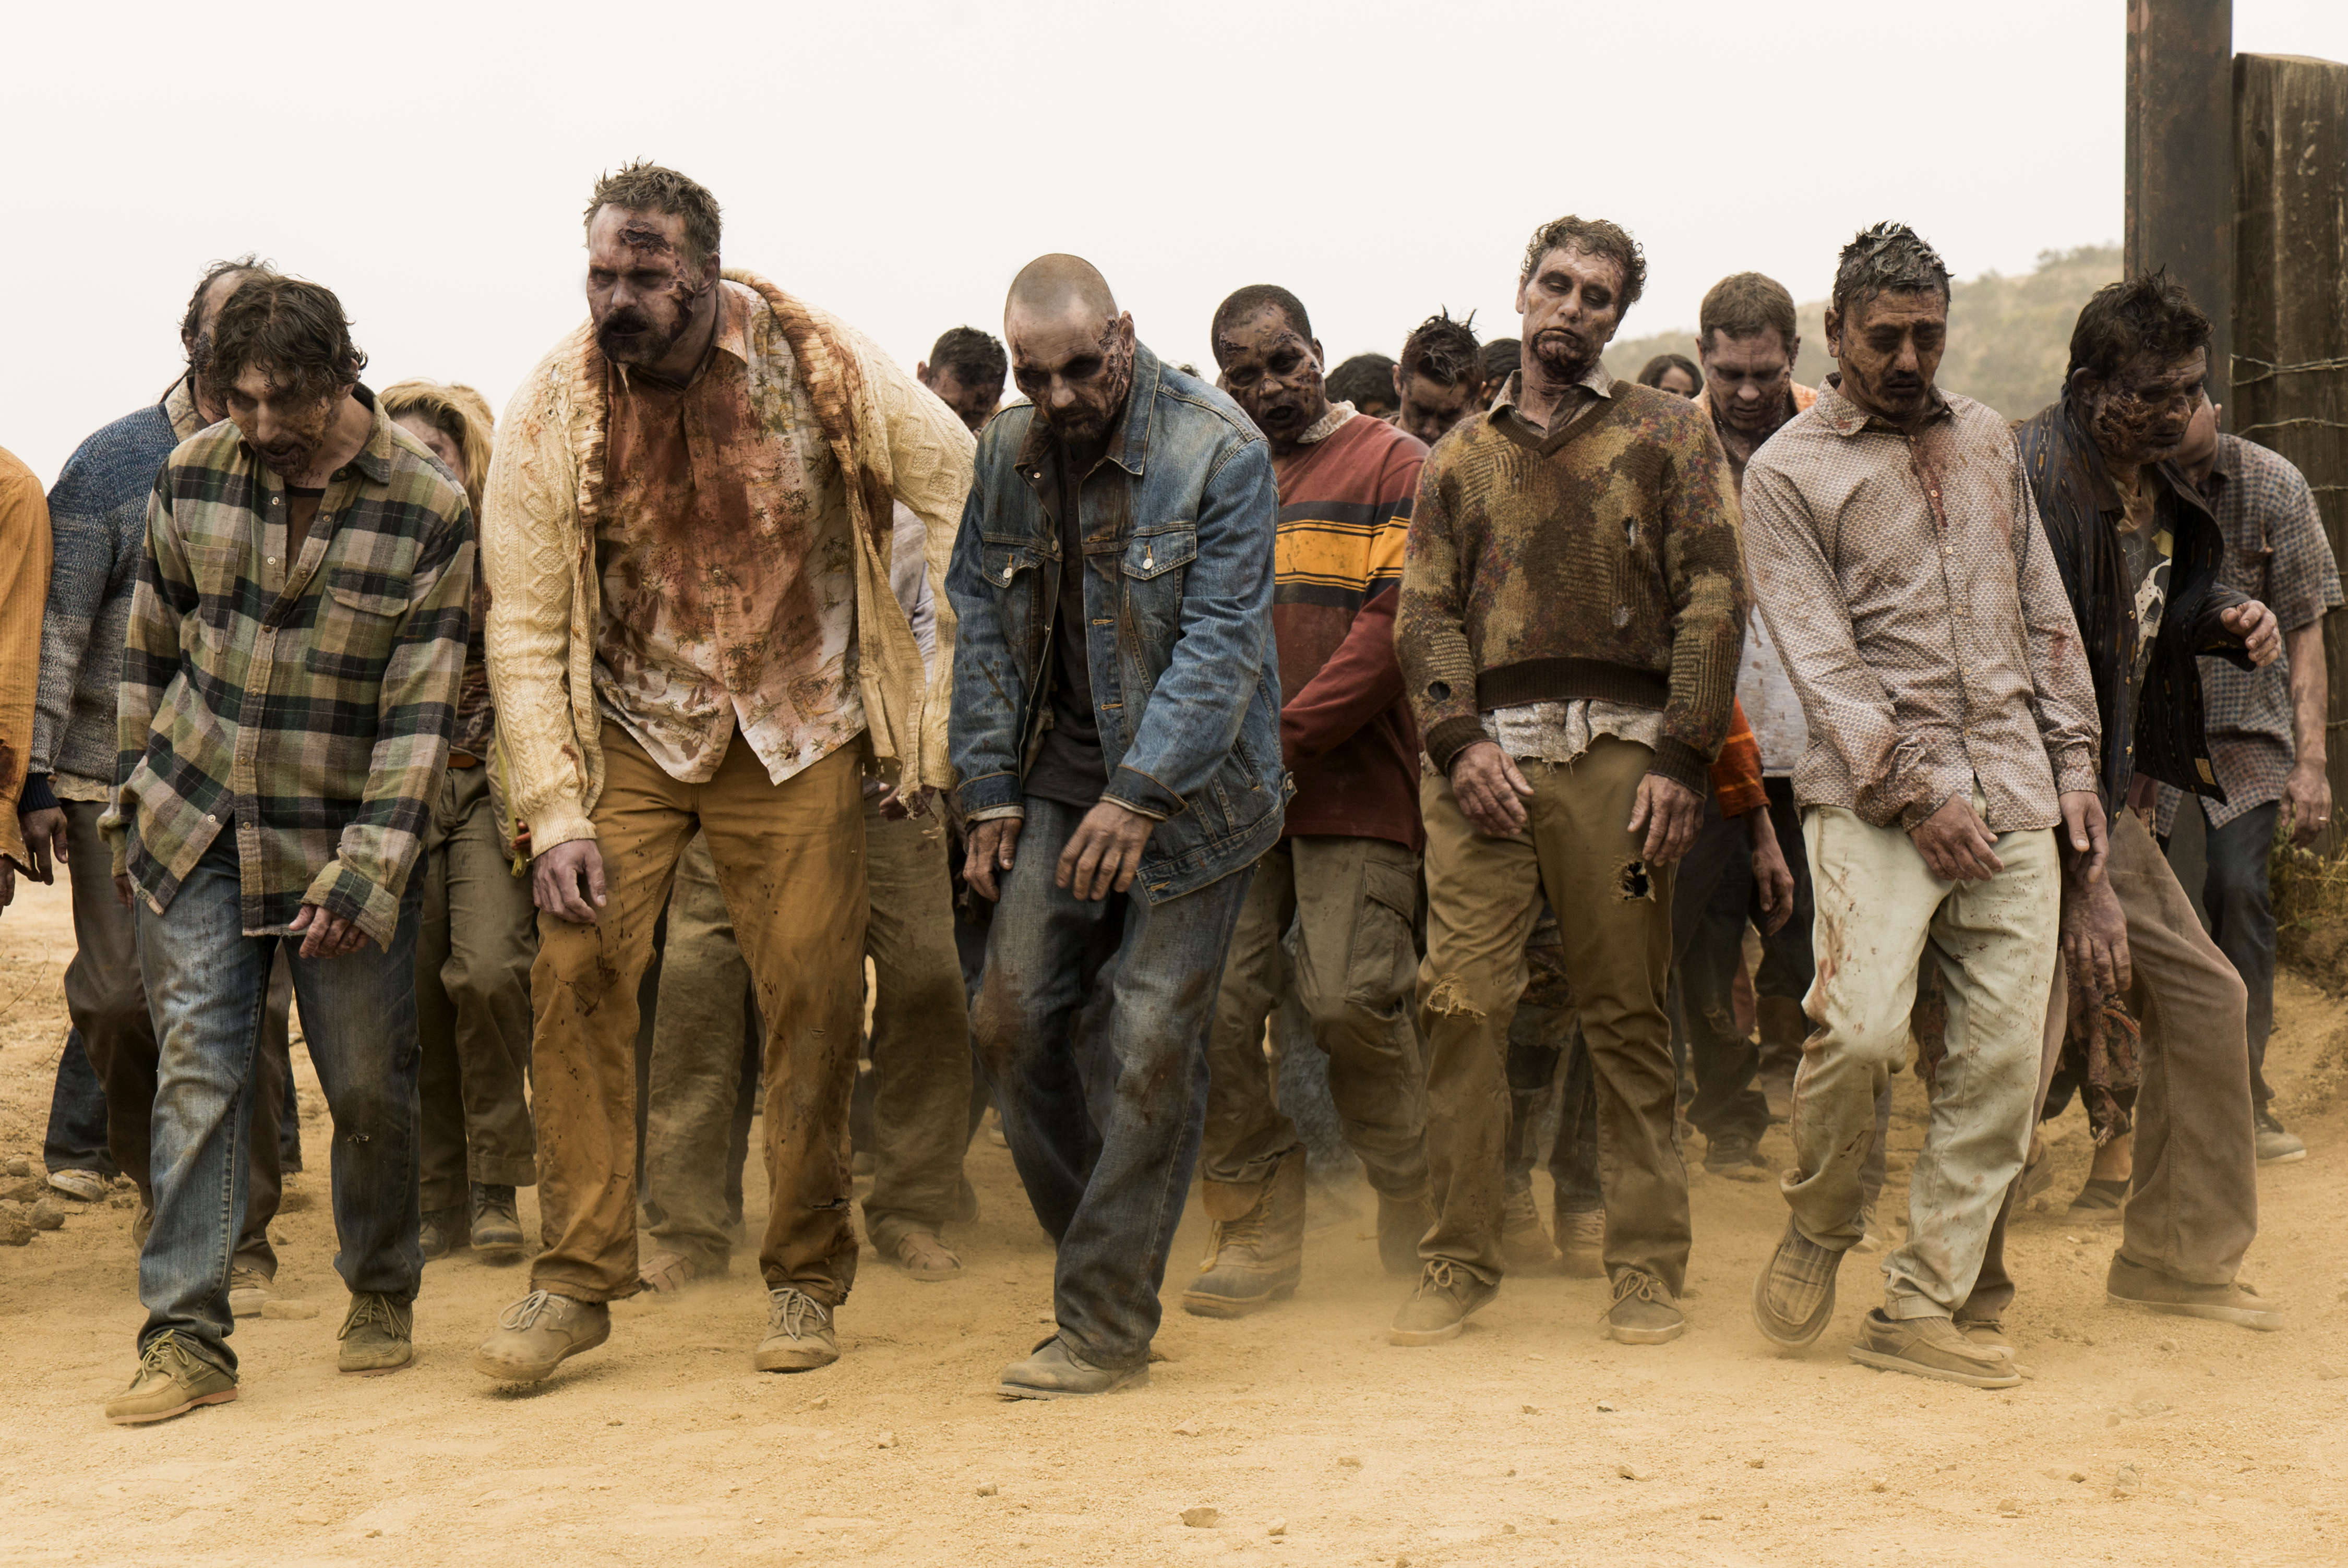 'Fear the Walking Dead' unveils two radioactive clips along with Season 7 premiere date on AMC